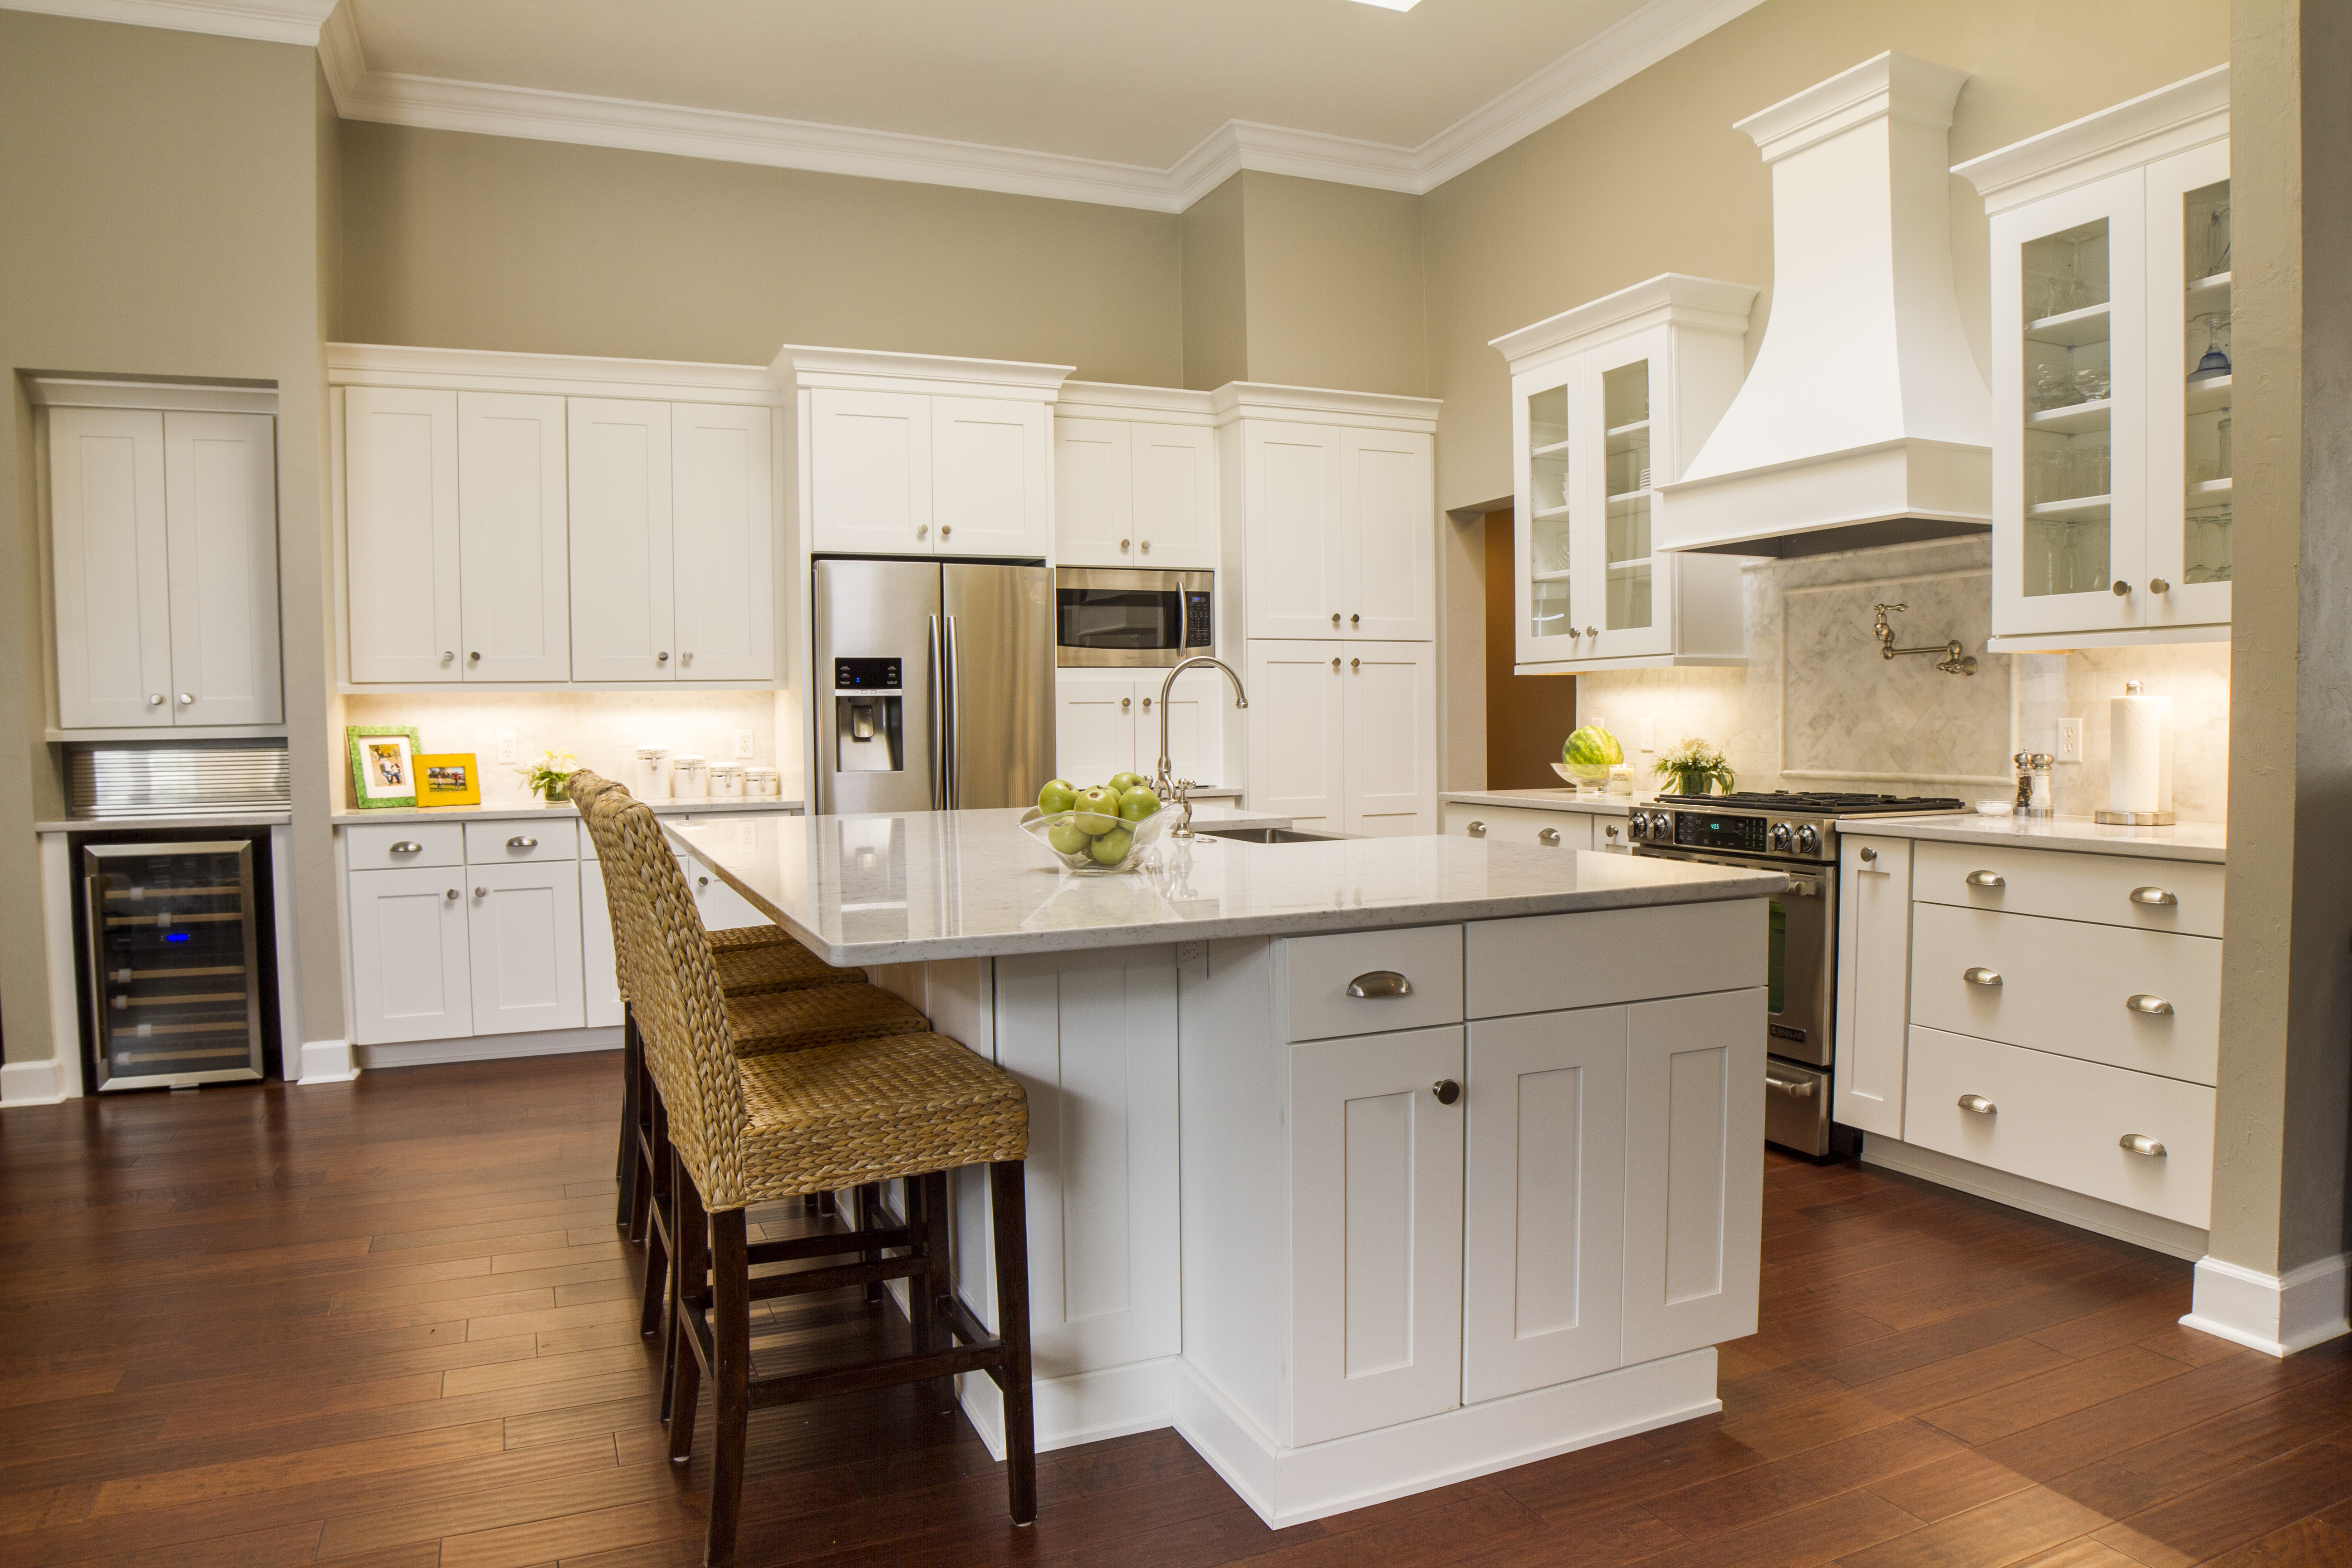 Gainesville Carpet And Flooring Images Deserts Colors